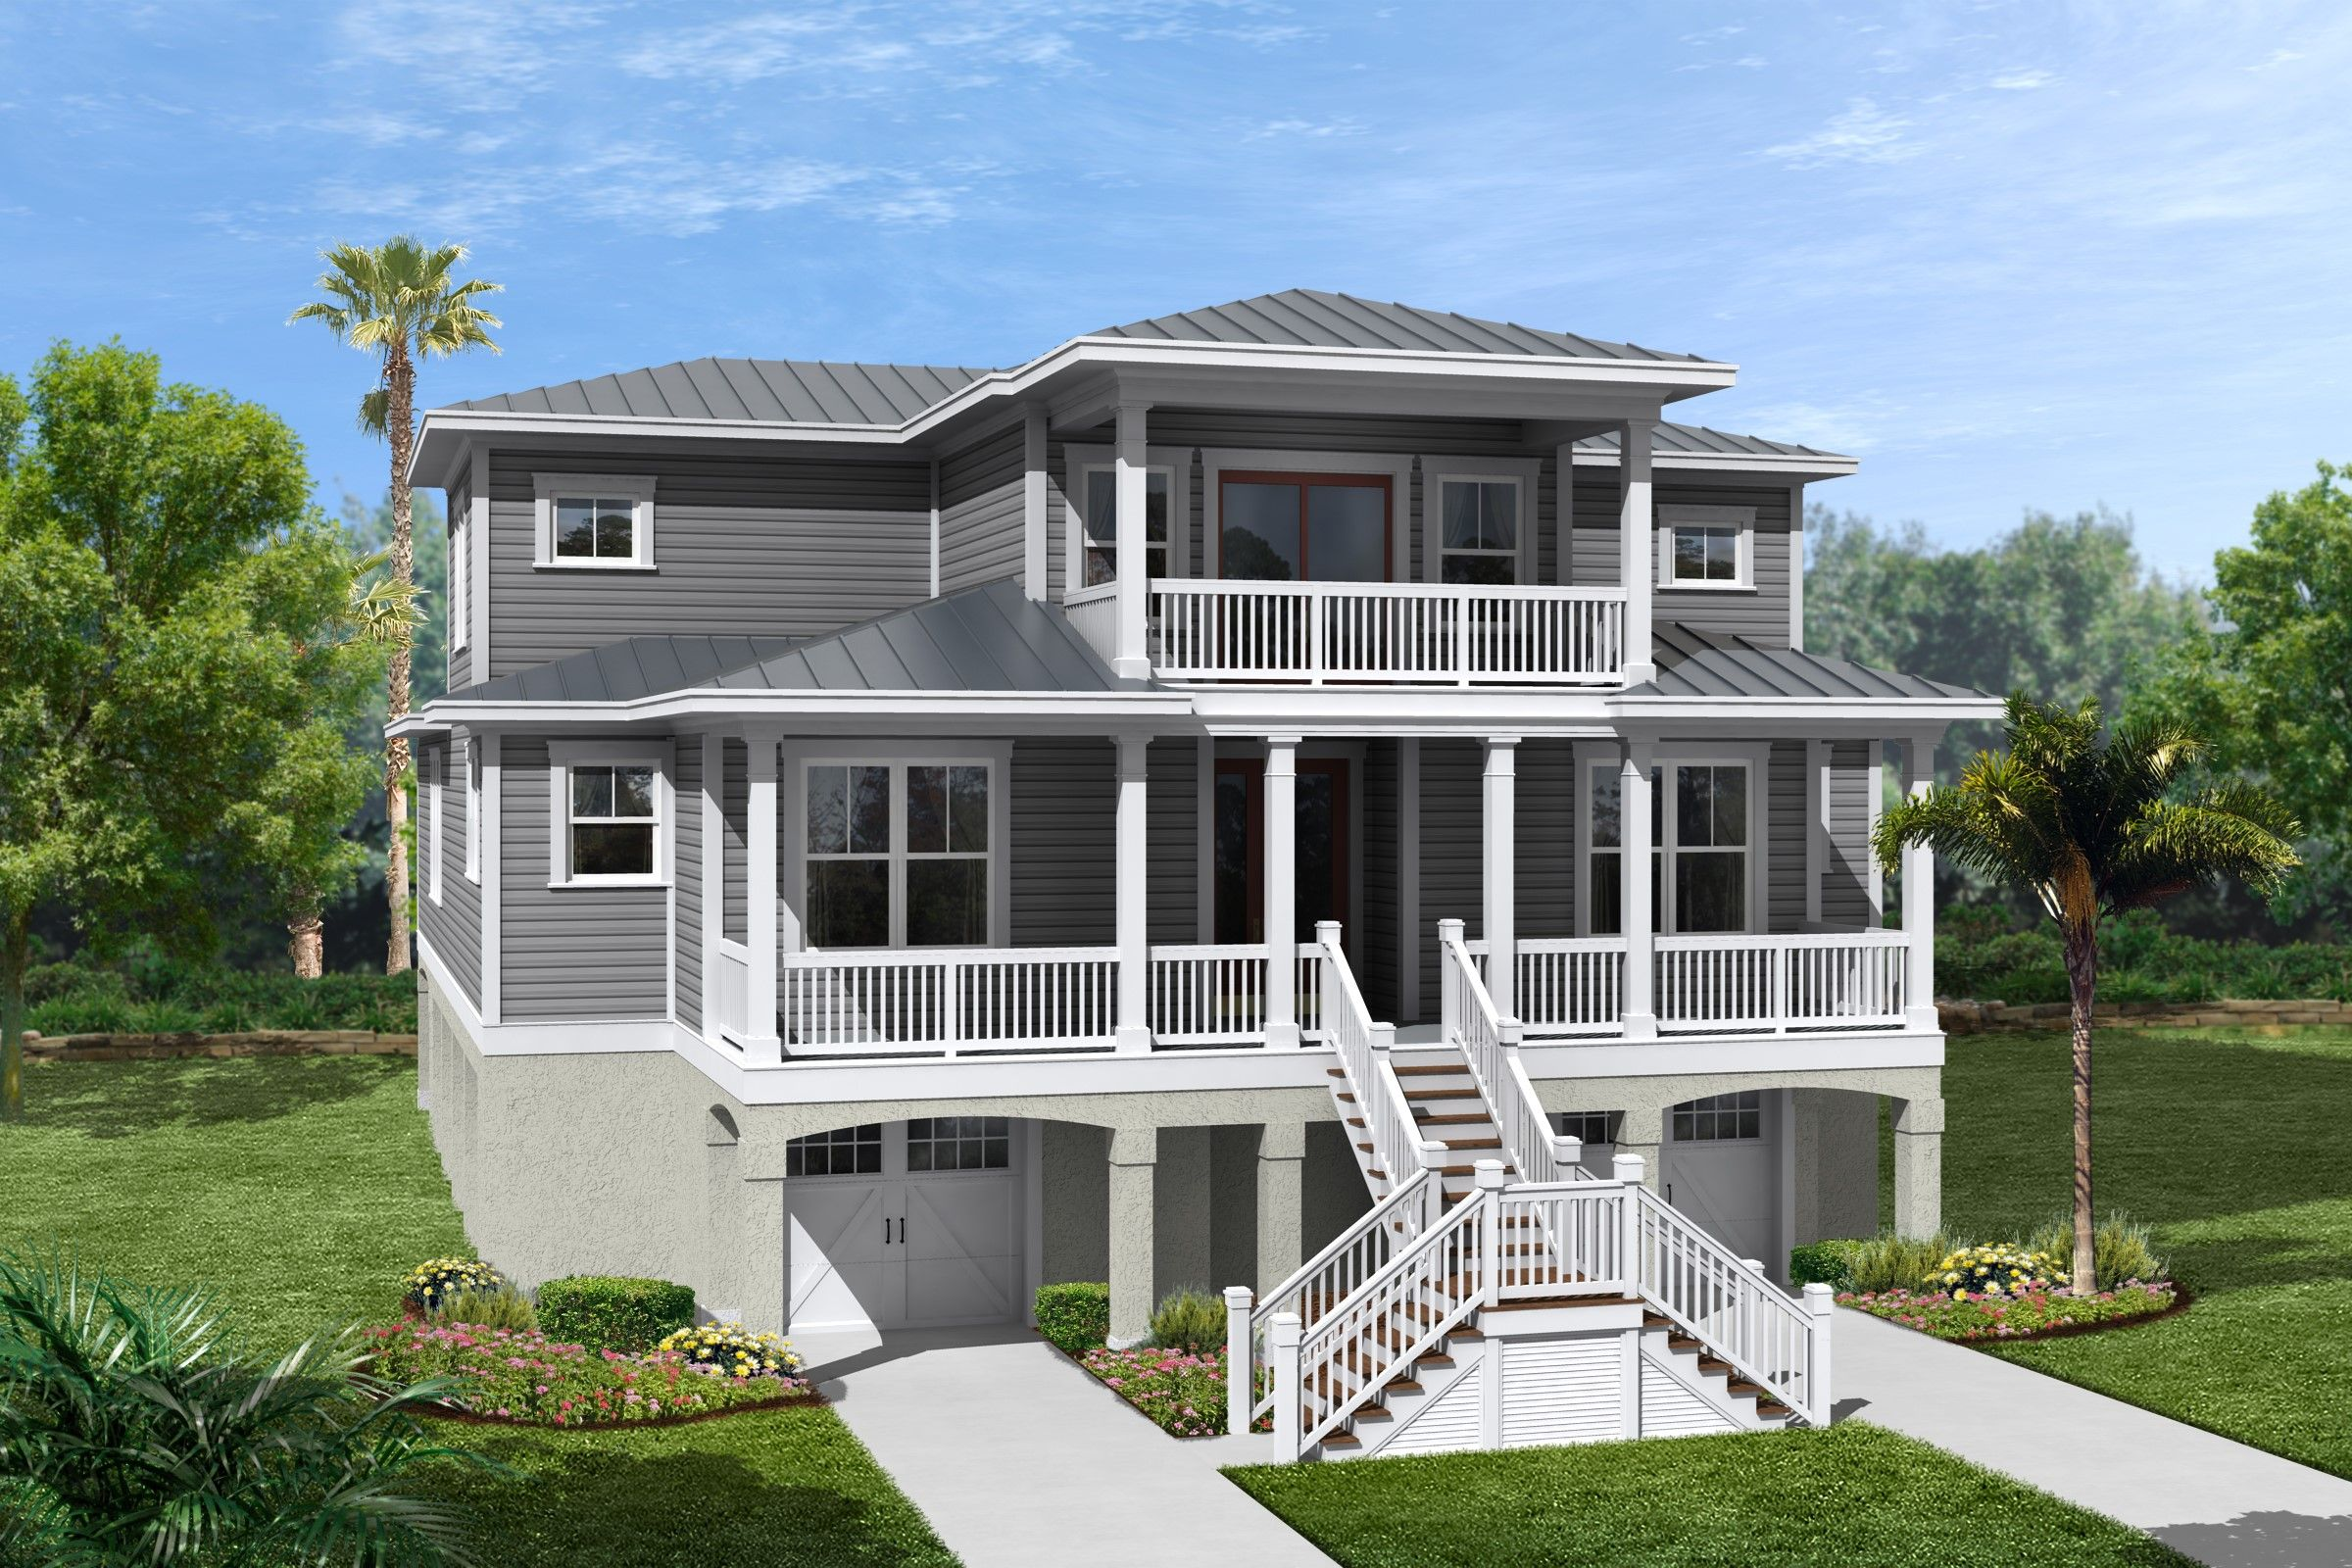 Hilton head luxury homes for sale puerto rico sotheby 39 s for Carolina island house cost to build